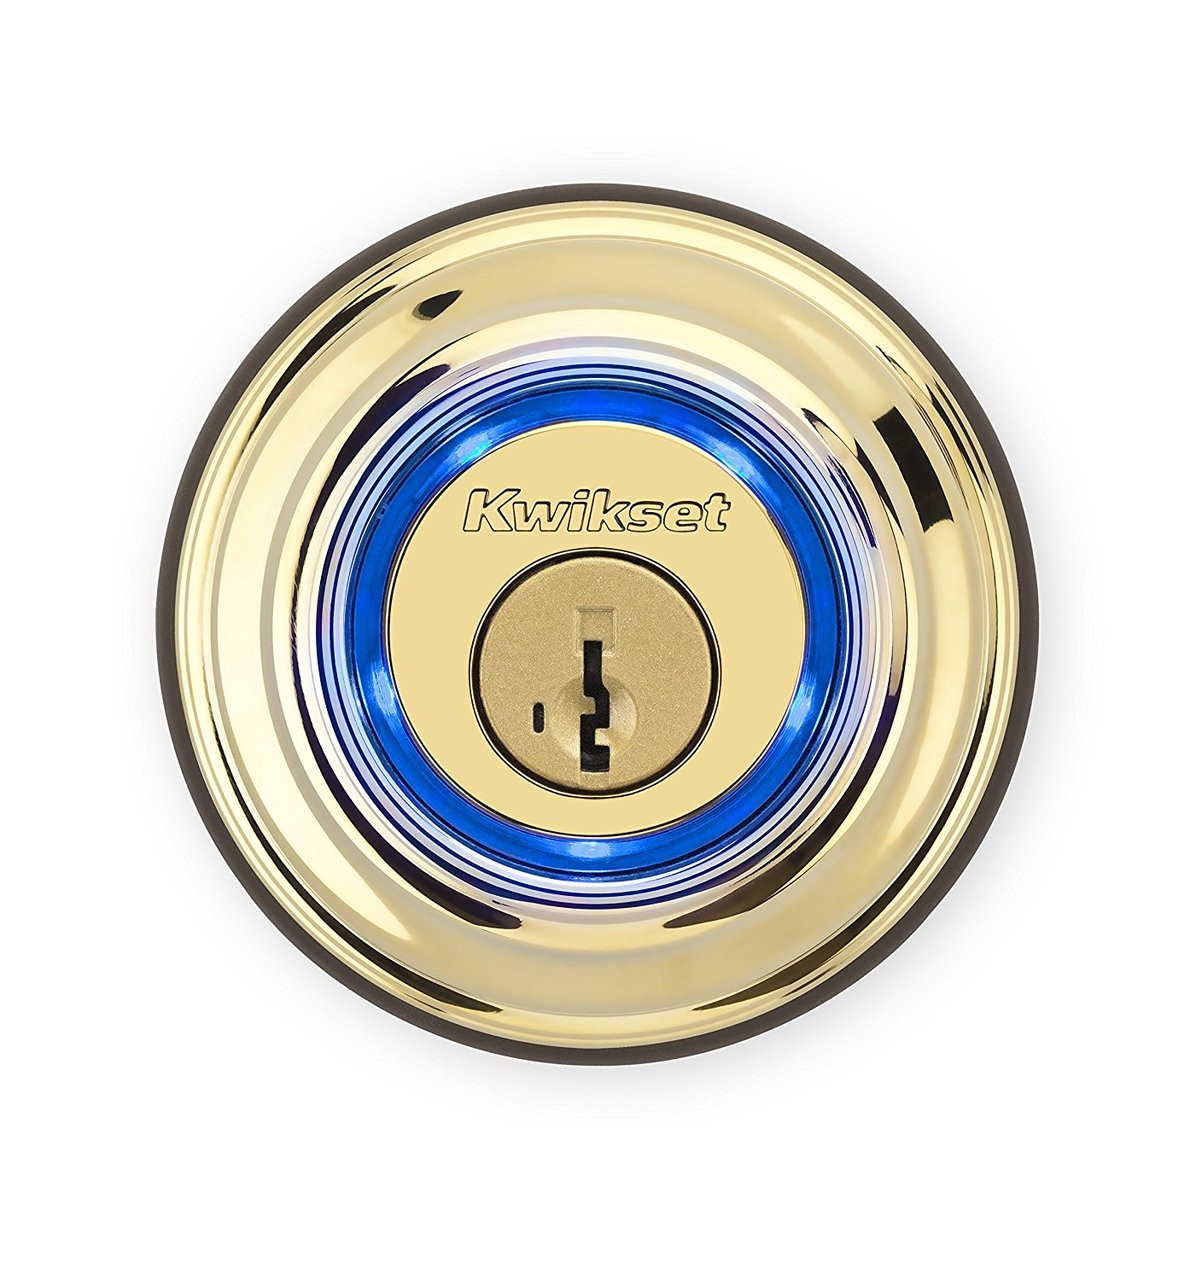 Kwikset KEVO Bluetooth Touch To Open Electronic Deadbolt 2nd Gen L03 Lifetime Bright Brass